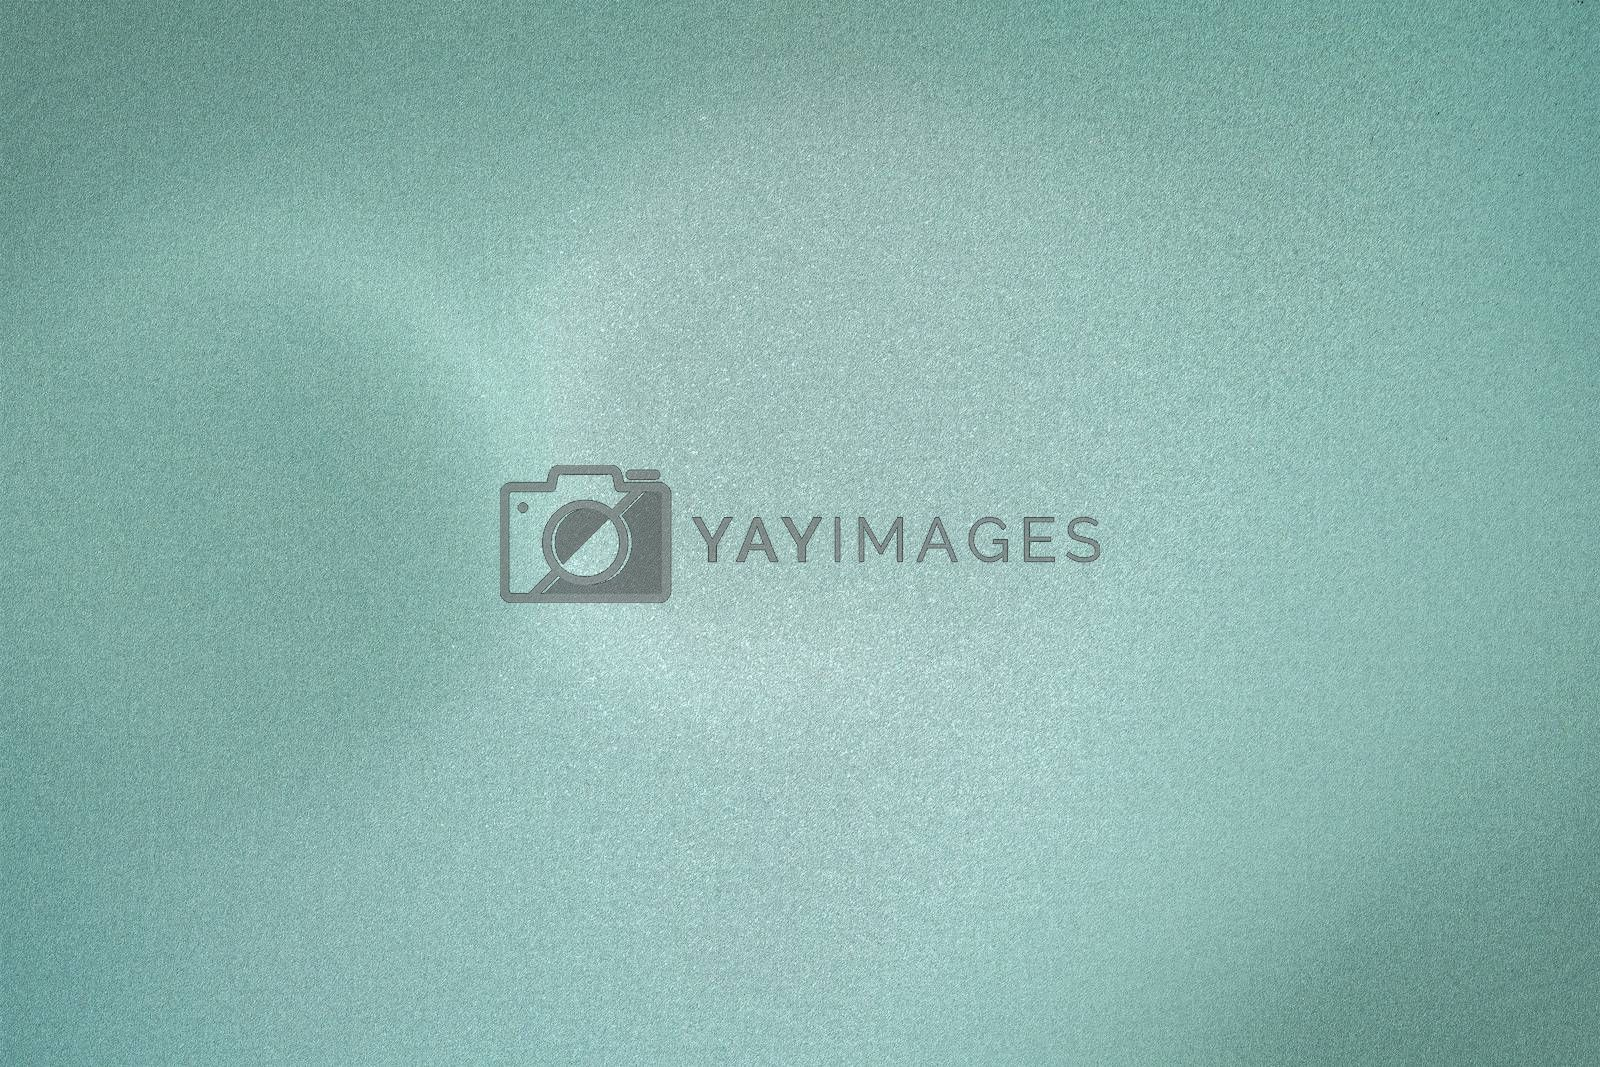 Royalty free image of Glowing green brushed metal wall, abstract texture background by mouu007